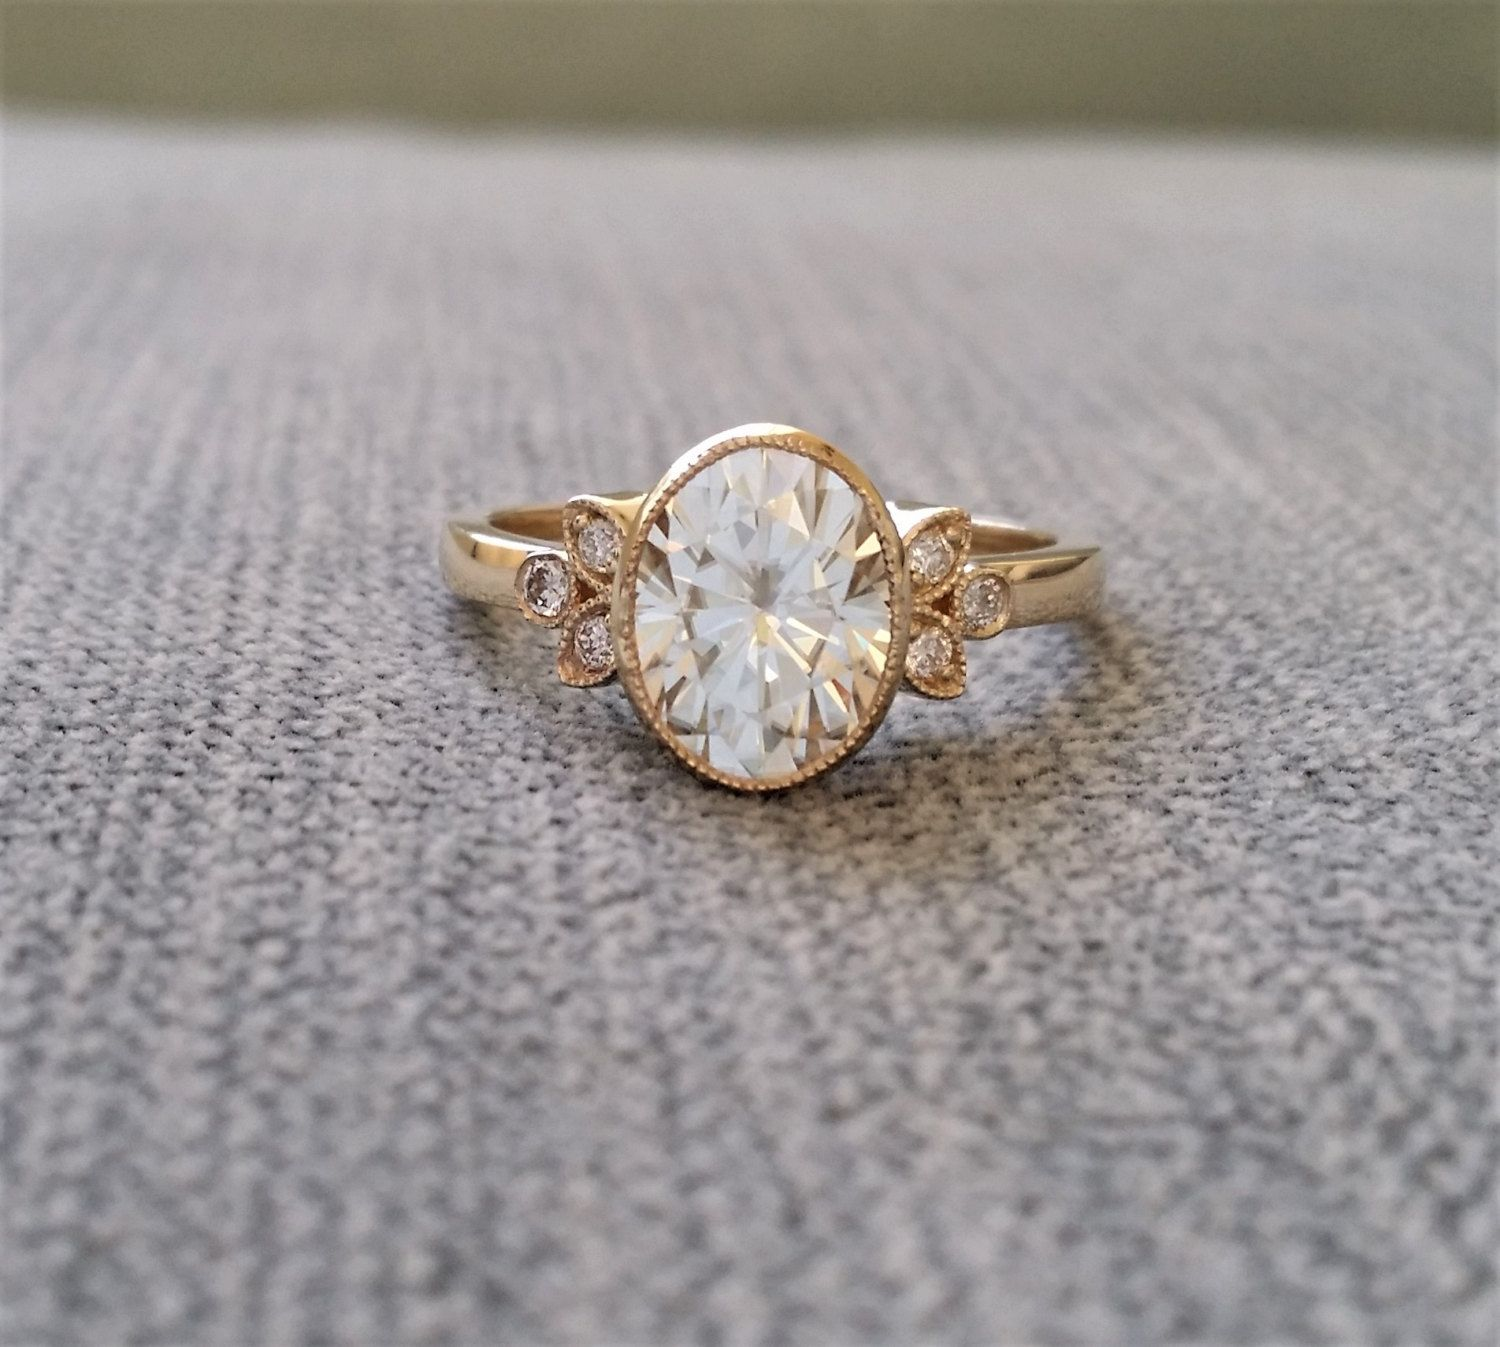 Antique Diamond E F Moissanite Engagement Ring Yellow Gold